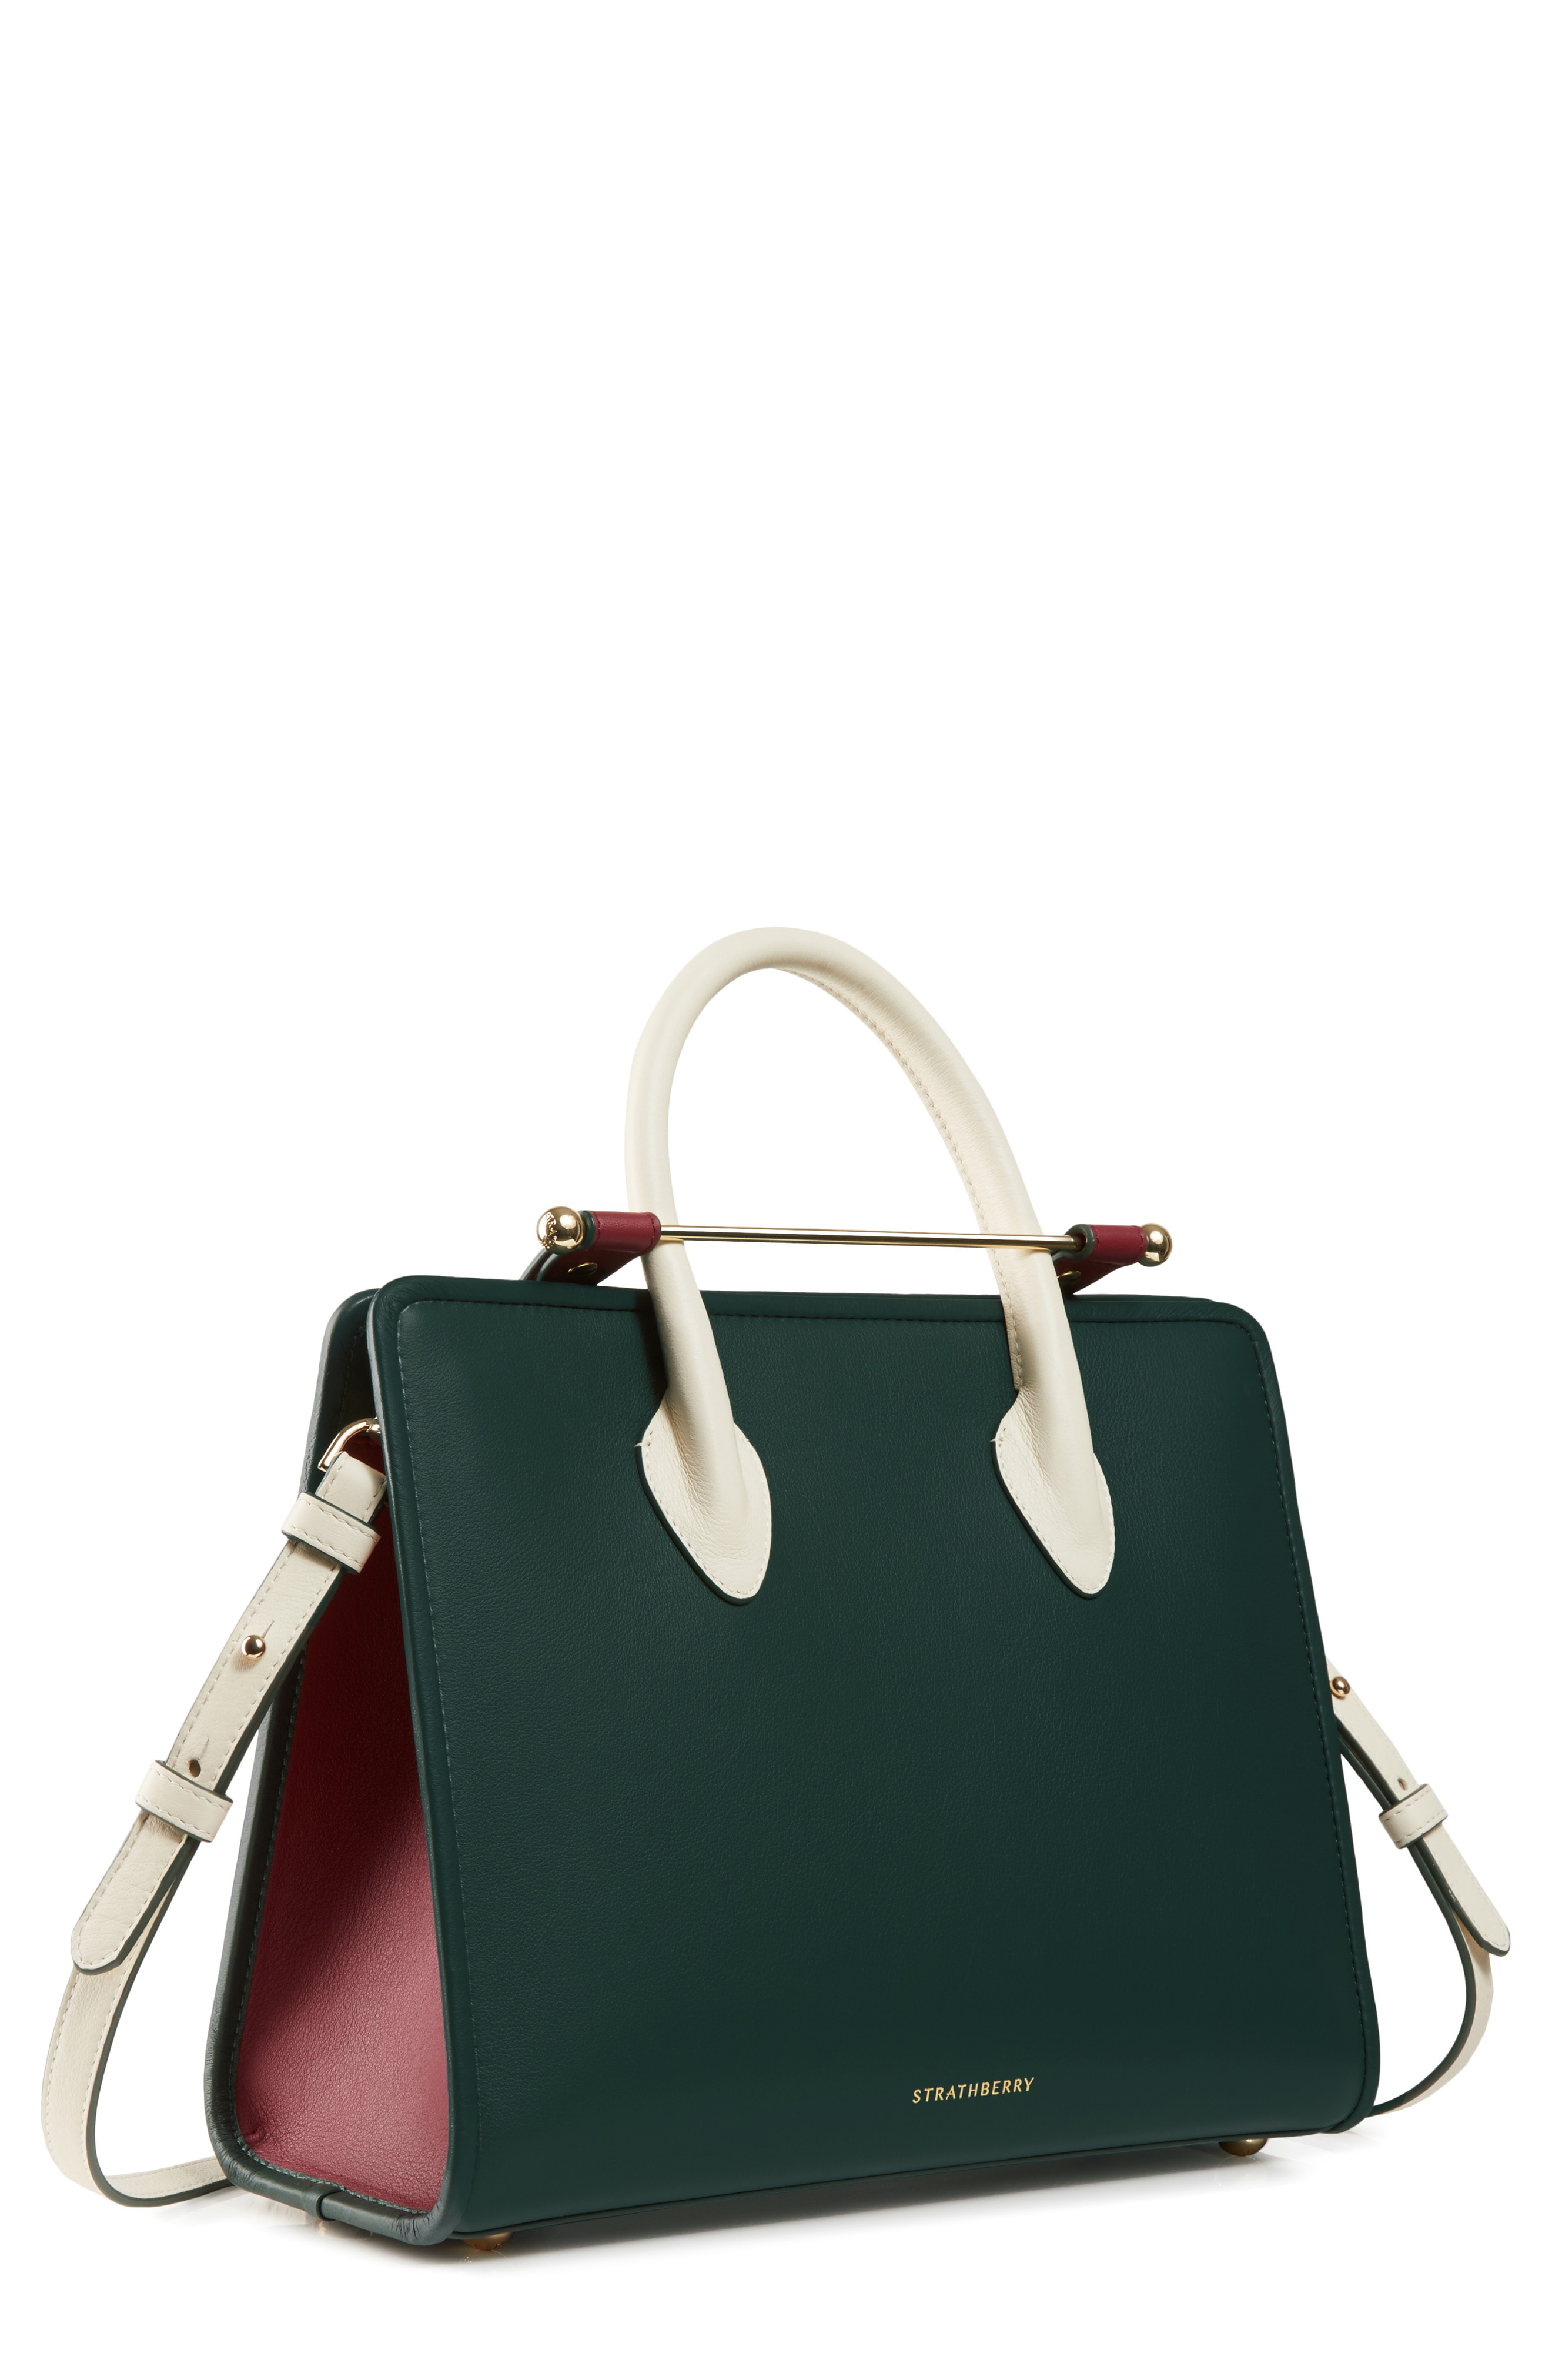 Strathberry Midi Leather Tote - Green In Bottle Green  Ember  Vanilla 54cbbf88def1d